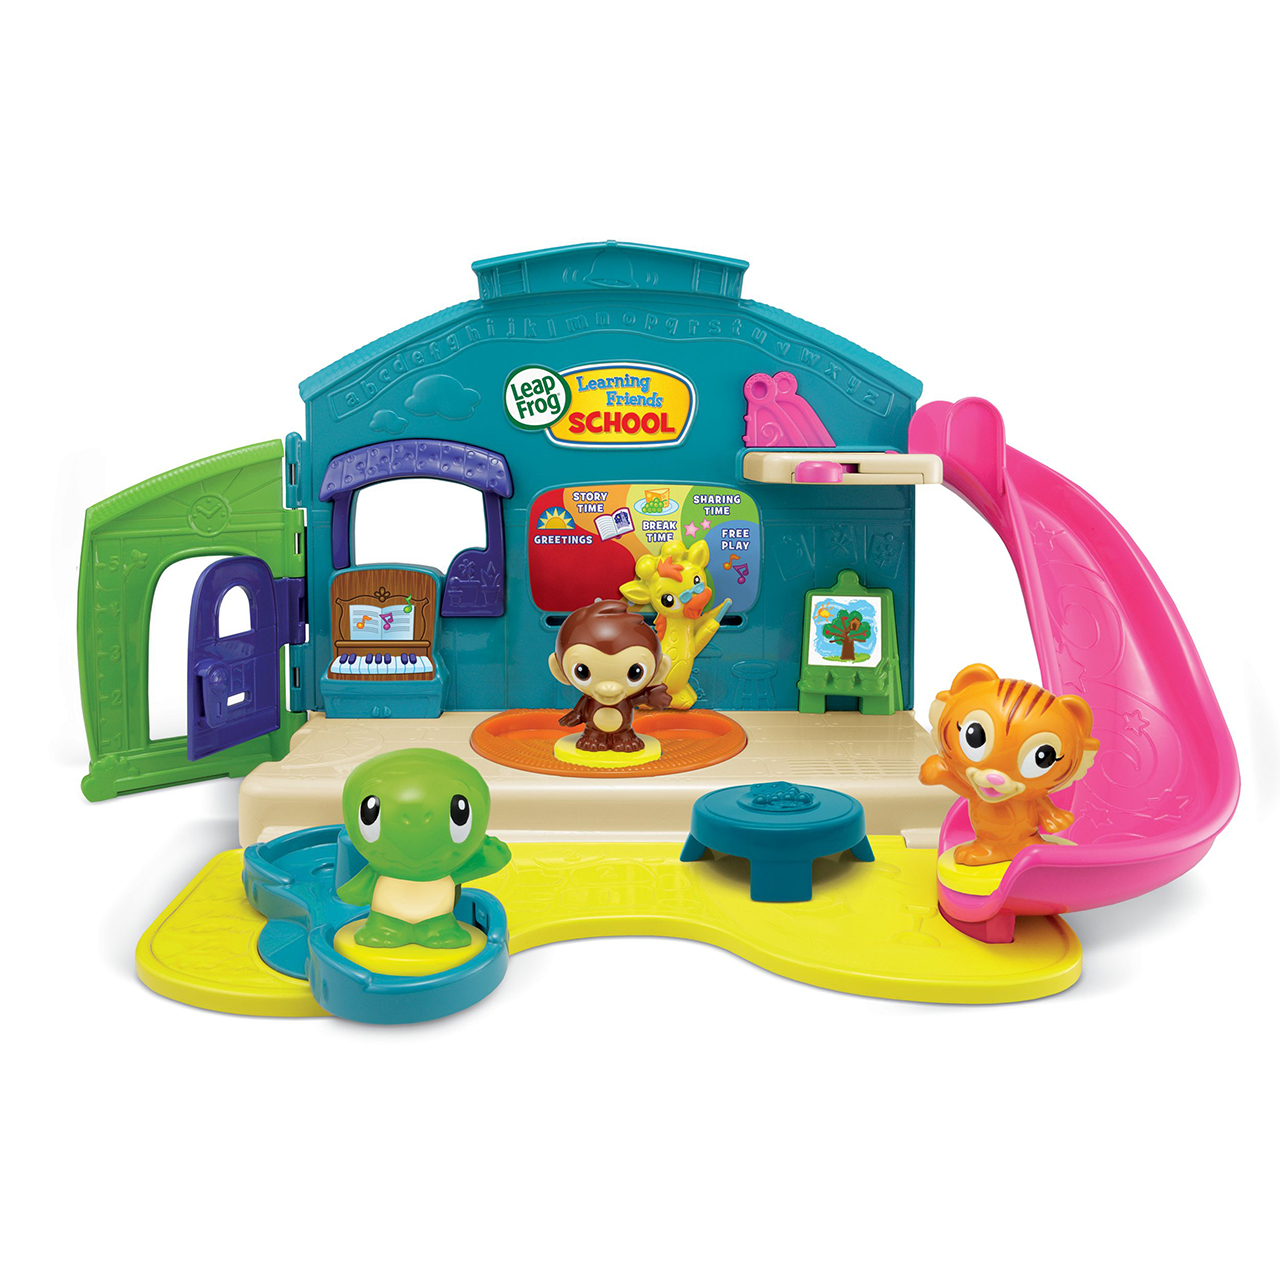 Toys For School : Leapfrog lets go to school playset prima toys